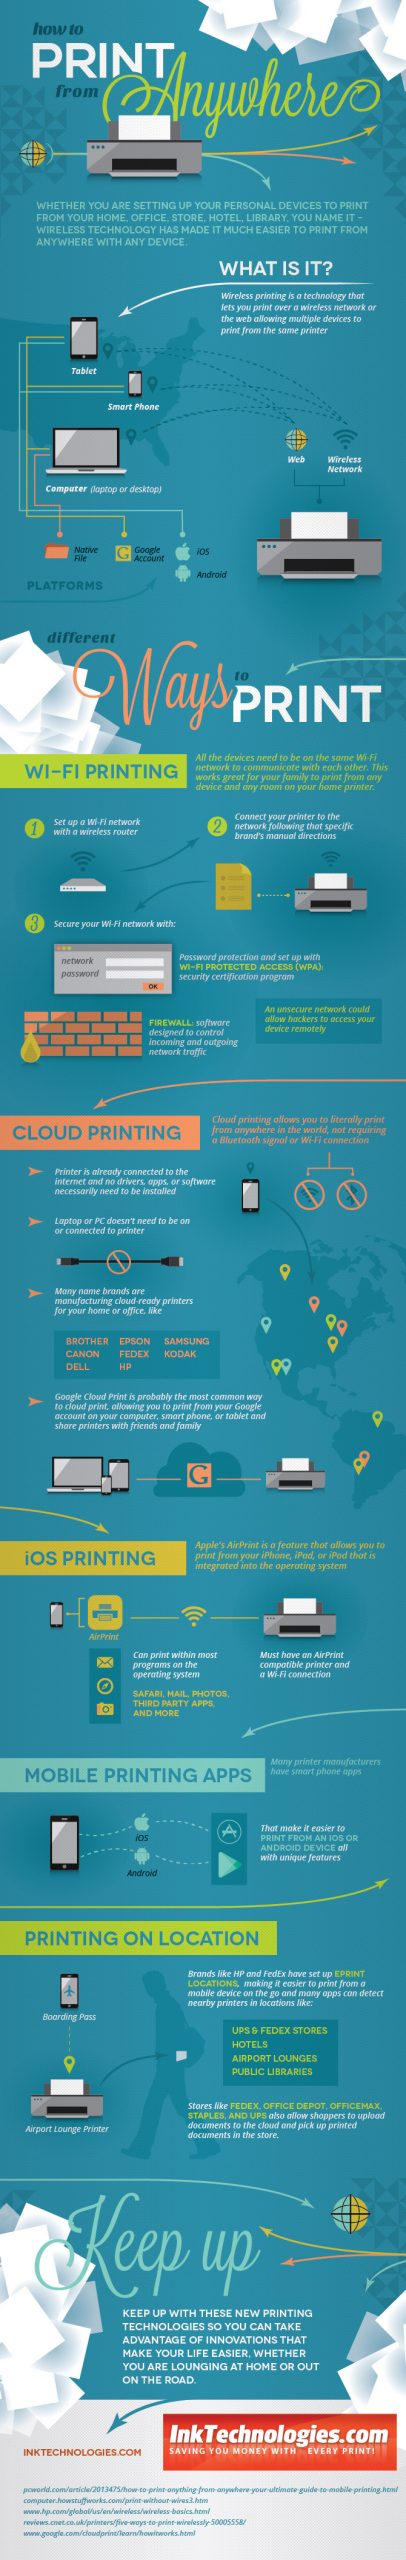 Tech Tip: How to Print From Anywhere!